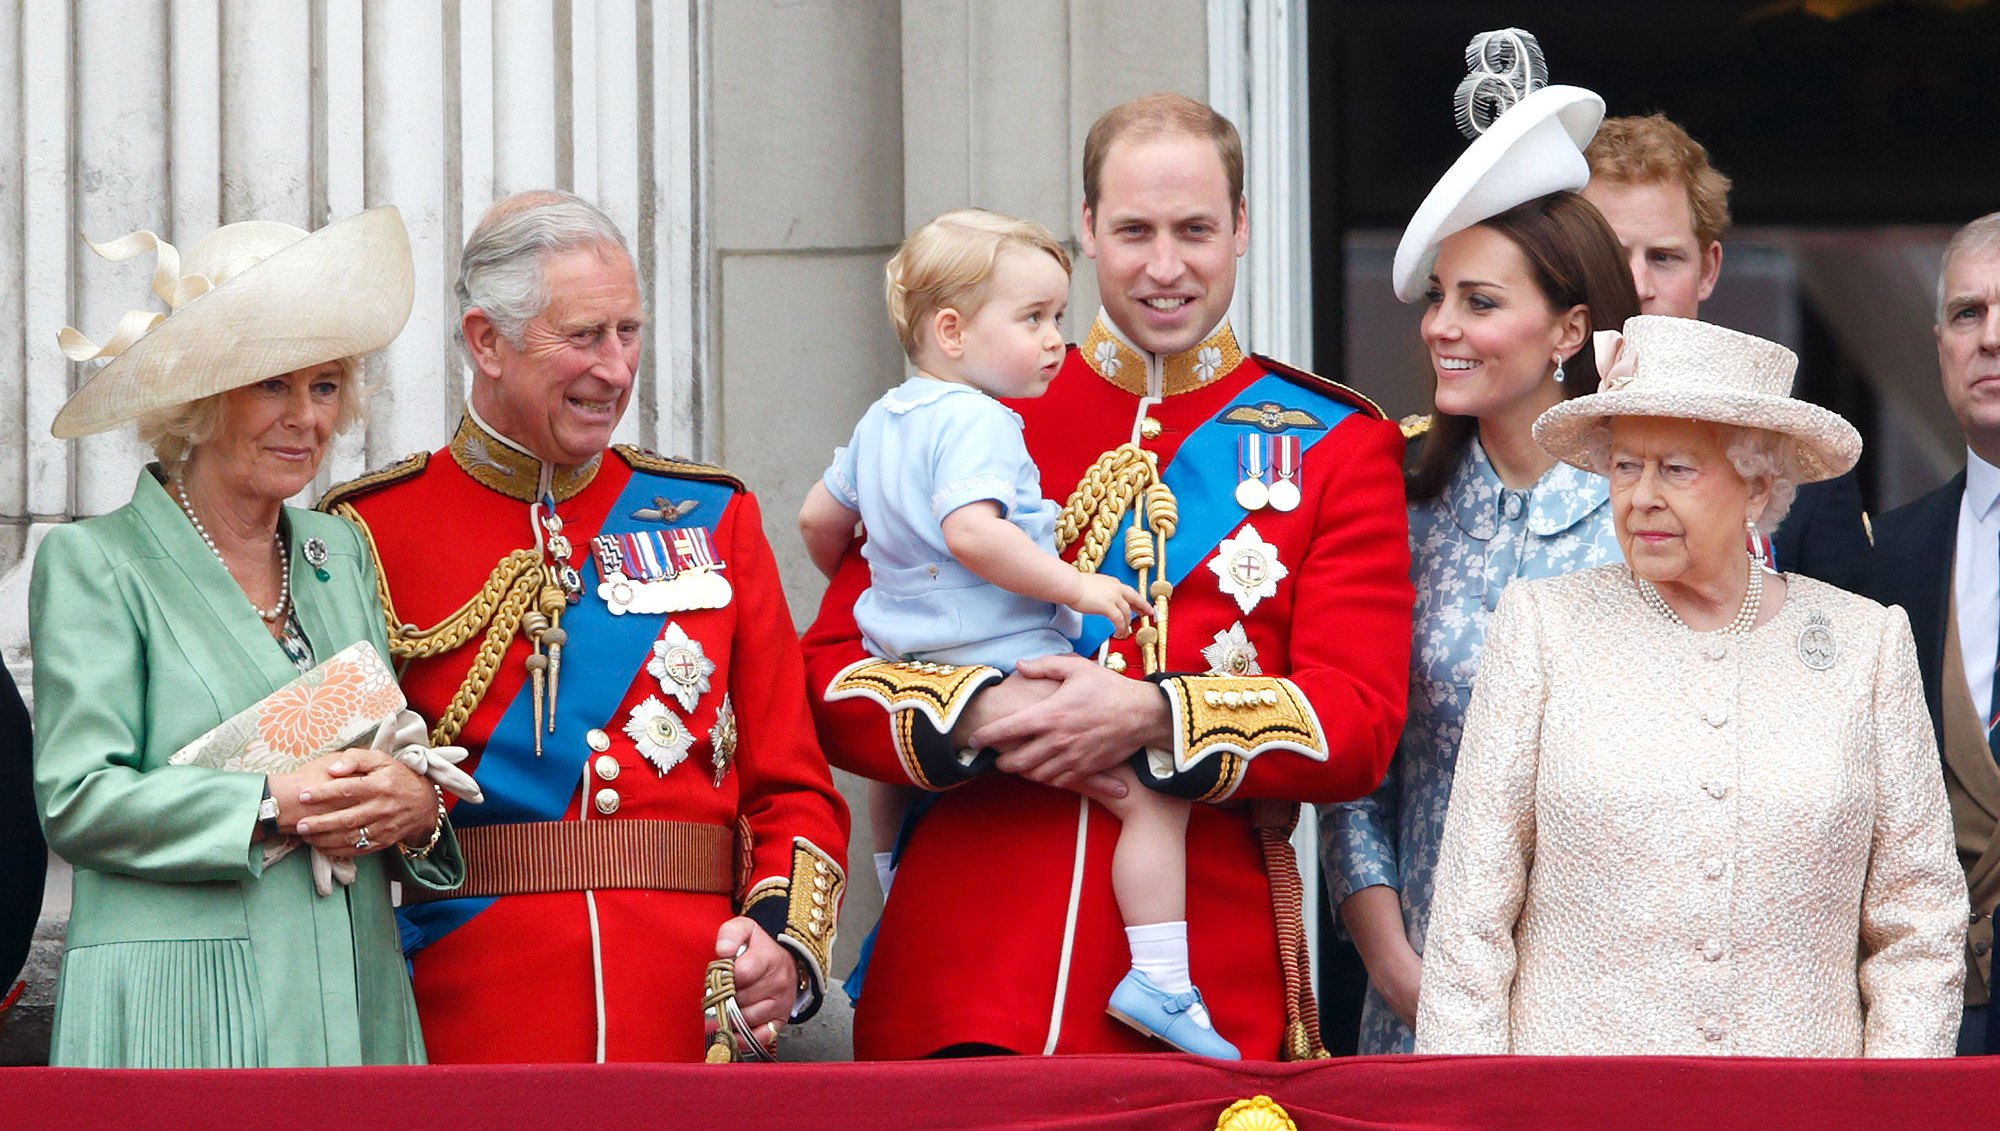 Camilla, Duchess of Cornwall, Prince Charles, Prince of Wales, Prince William, Duke of Cambridge, Prince George of Cambridge, Catherine, Duchess of Cambridge and Queen Elizabeth II